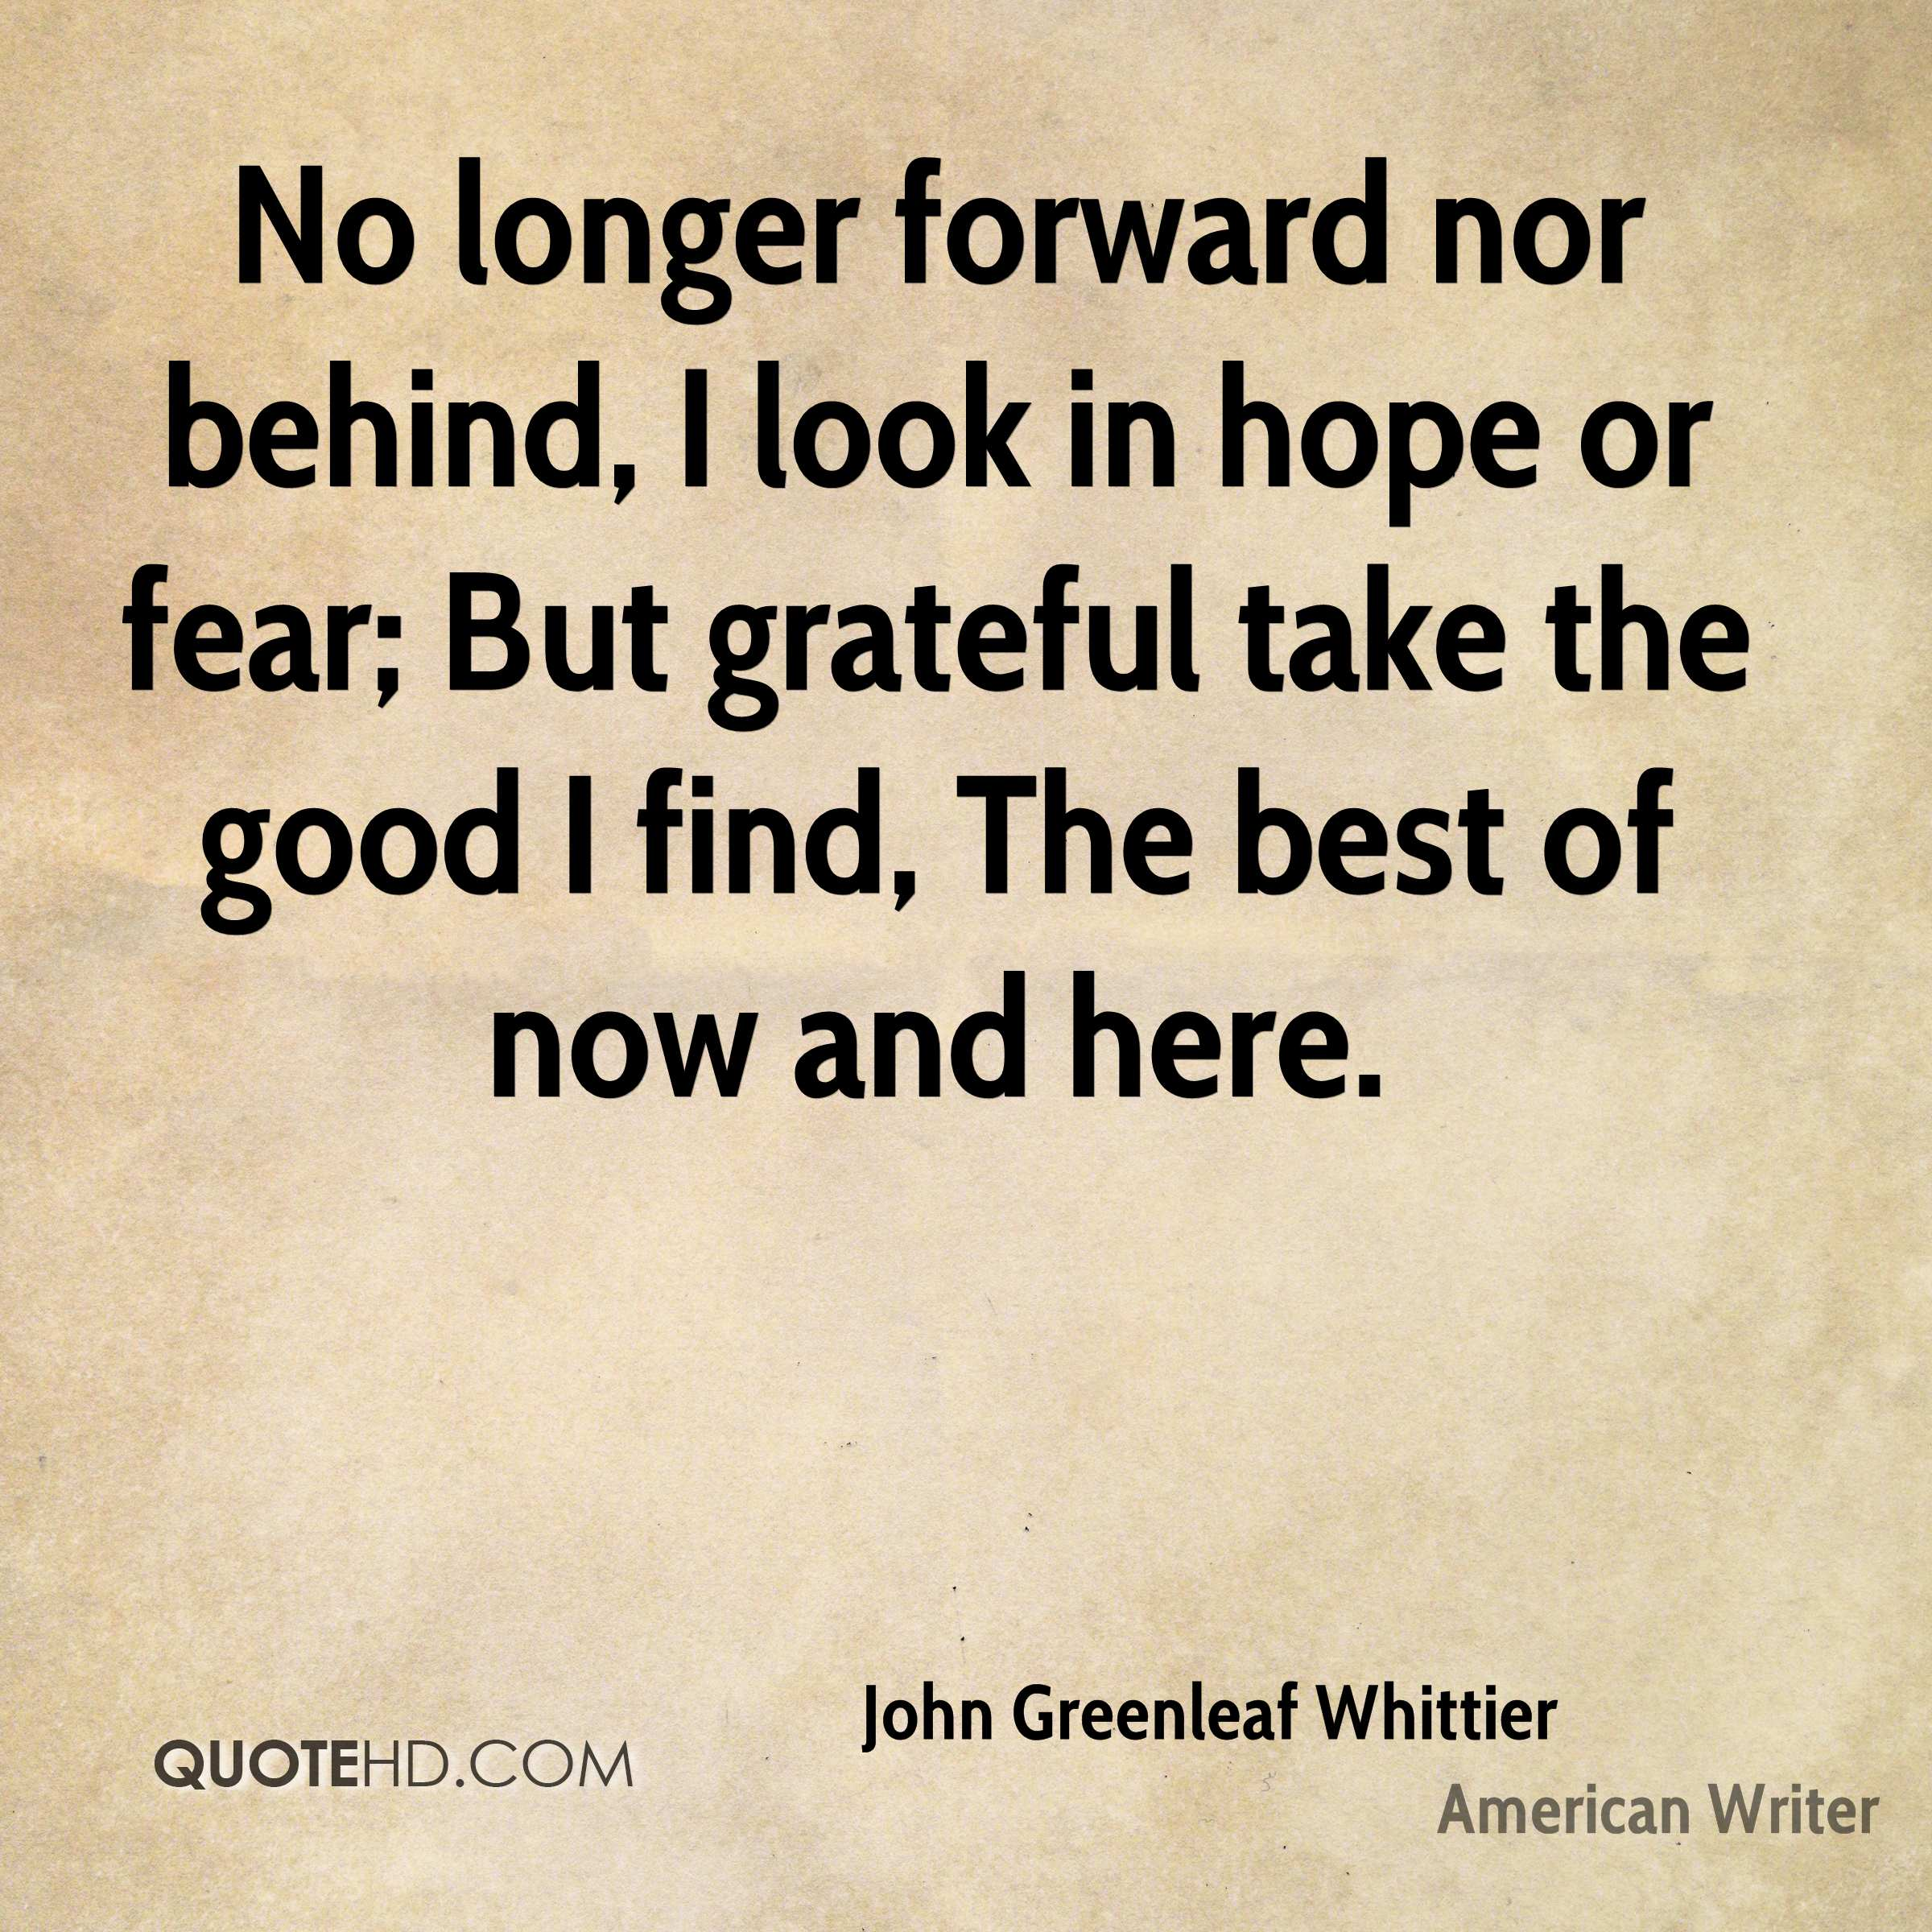 No longer forward nor behind, I look in hope or fear; But grateful take the good I find, The best of now and here.